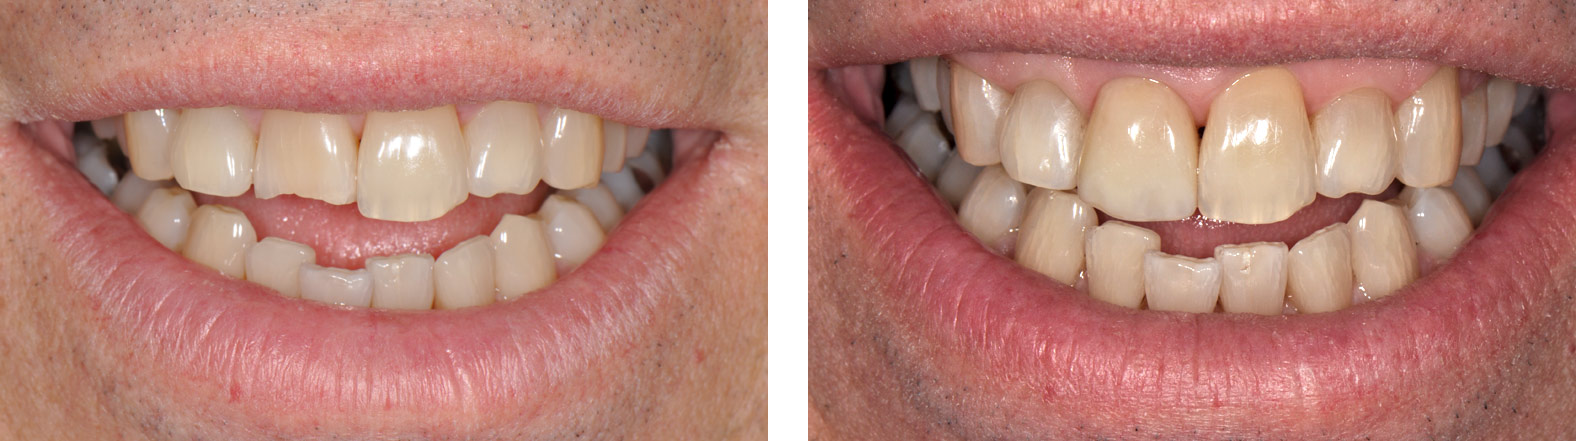 A close-up of six front teeth, showing one central incisor with a broken-off incisal edge repaired by Dr. Weiss